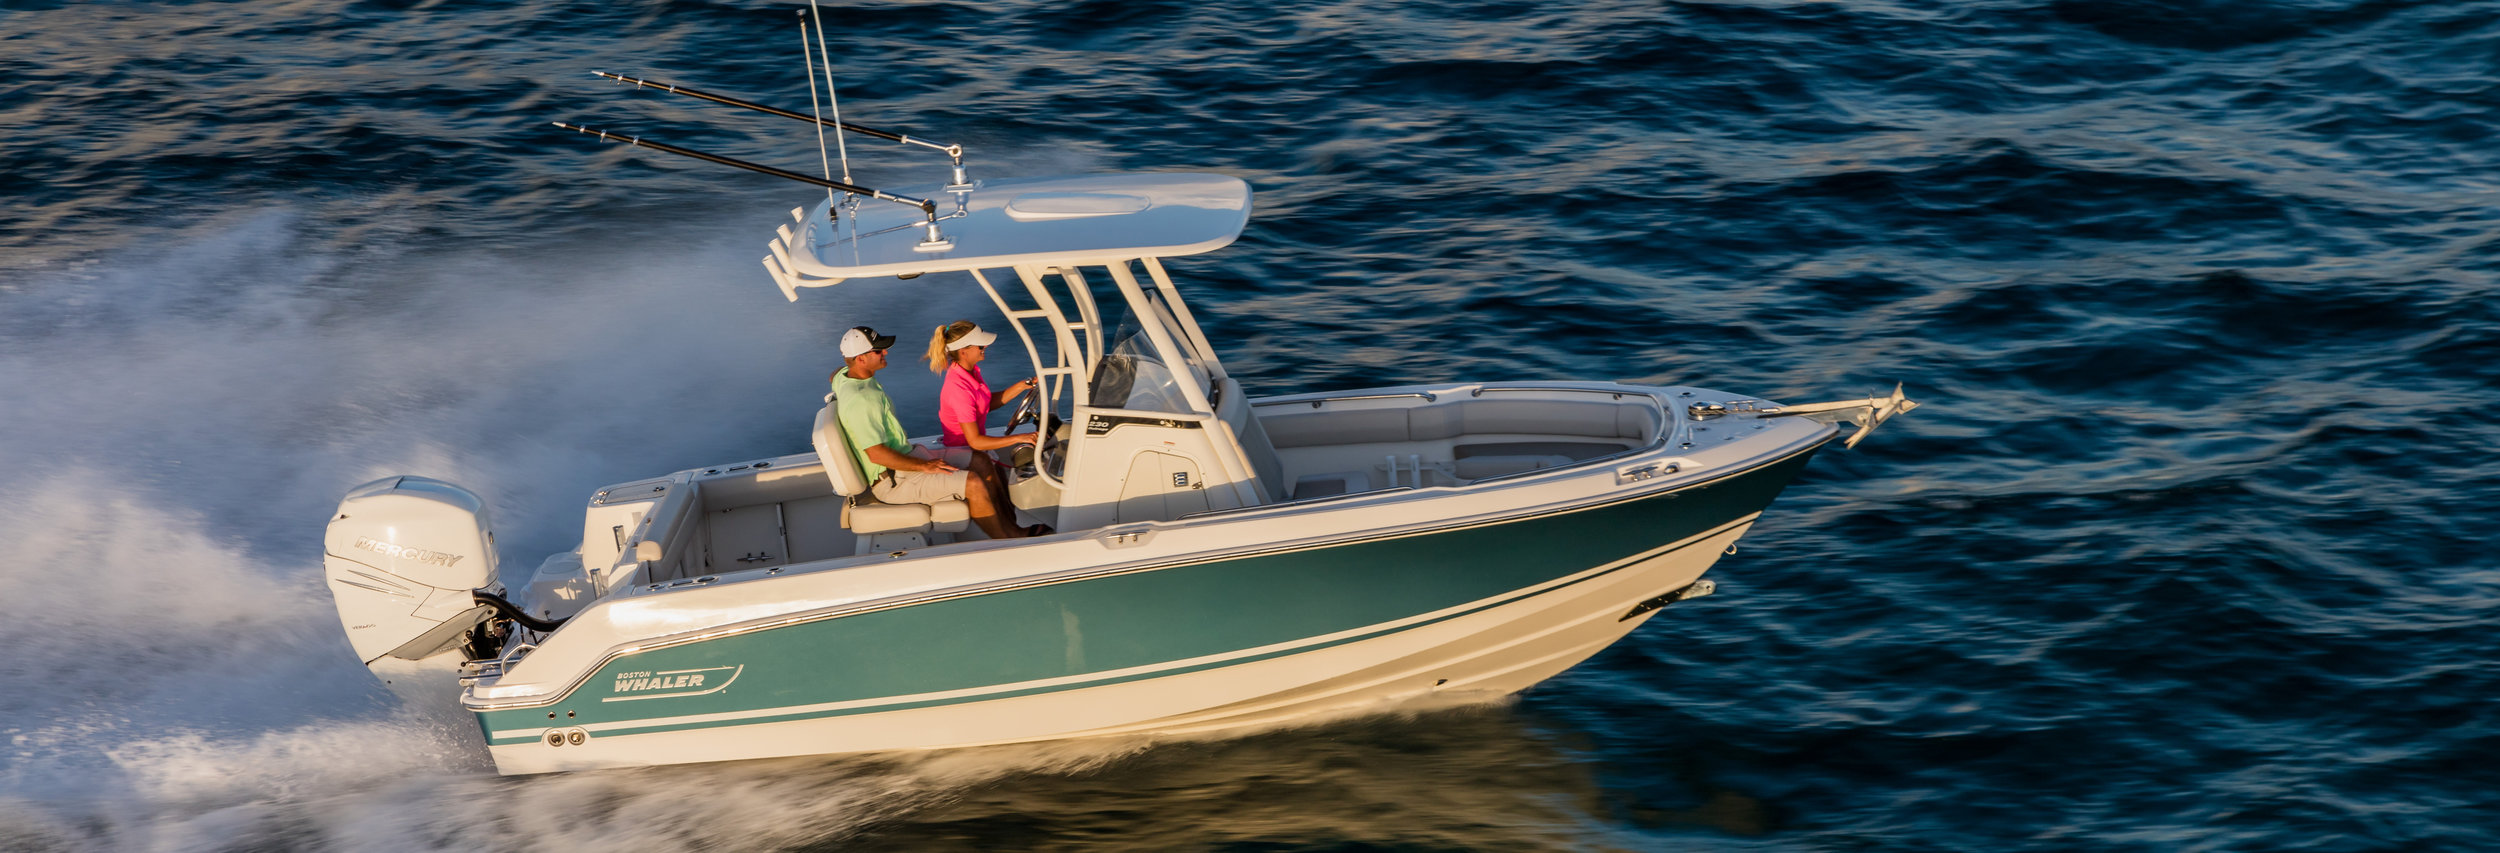 Boston-Whaler-230-Outrage-Gallery-Header.jpg